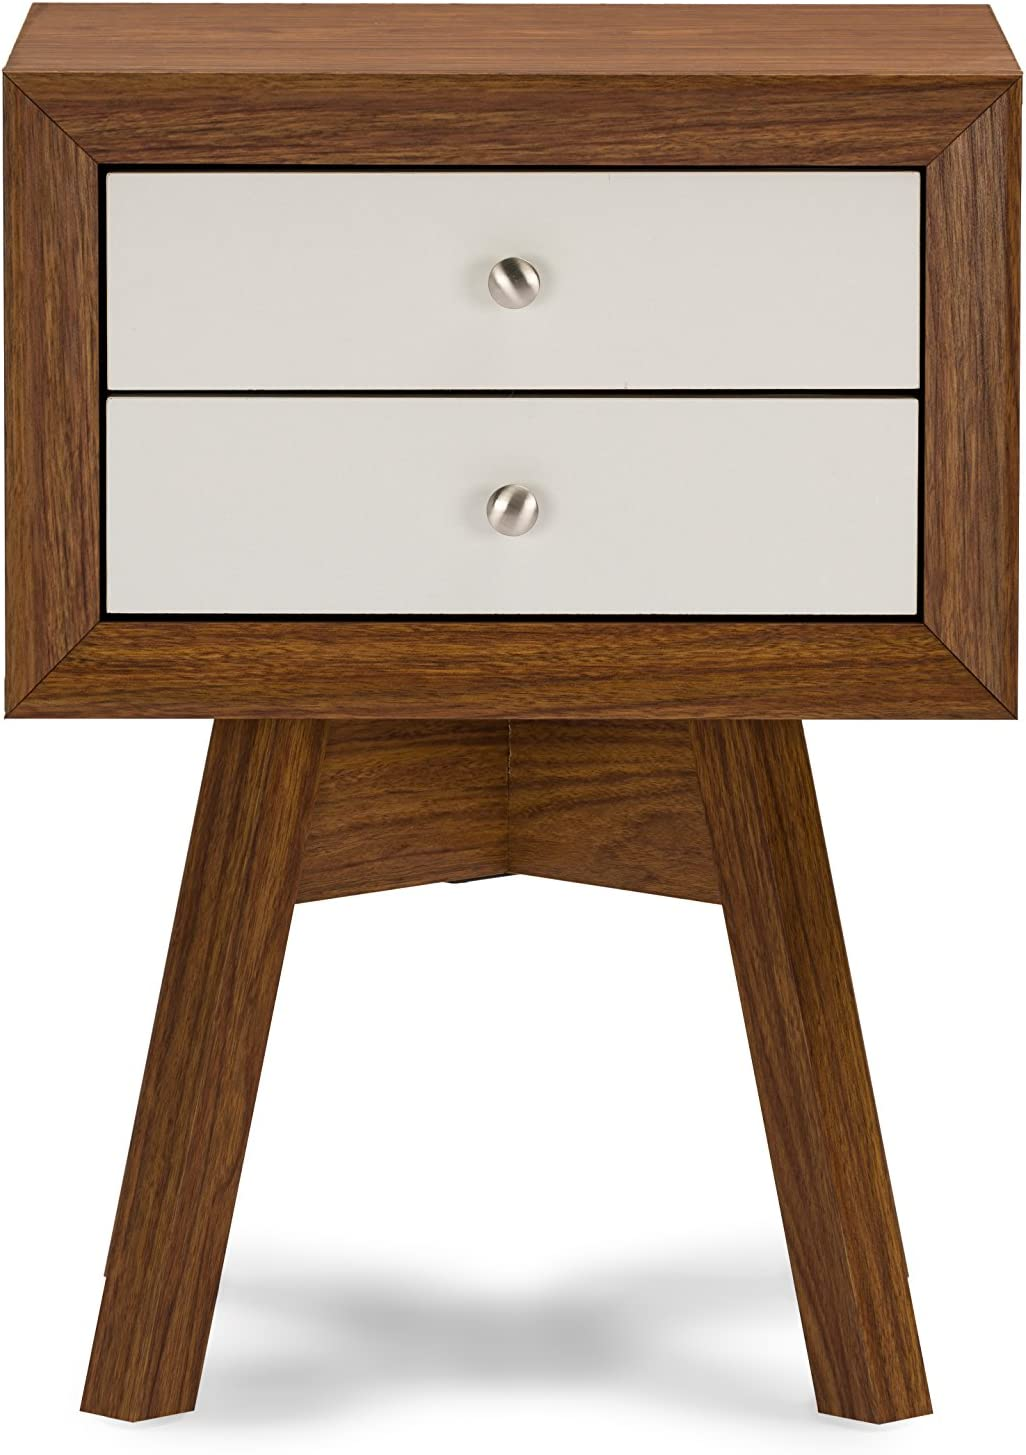 Baxton Studio Warwick Two-Tone Modern Accent Table and Nightstand, Walnut/White